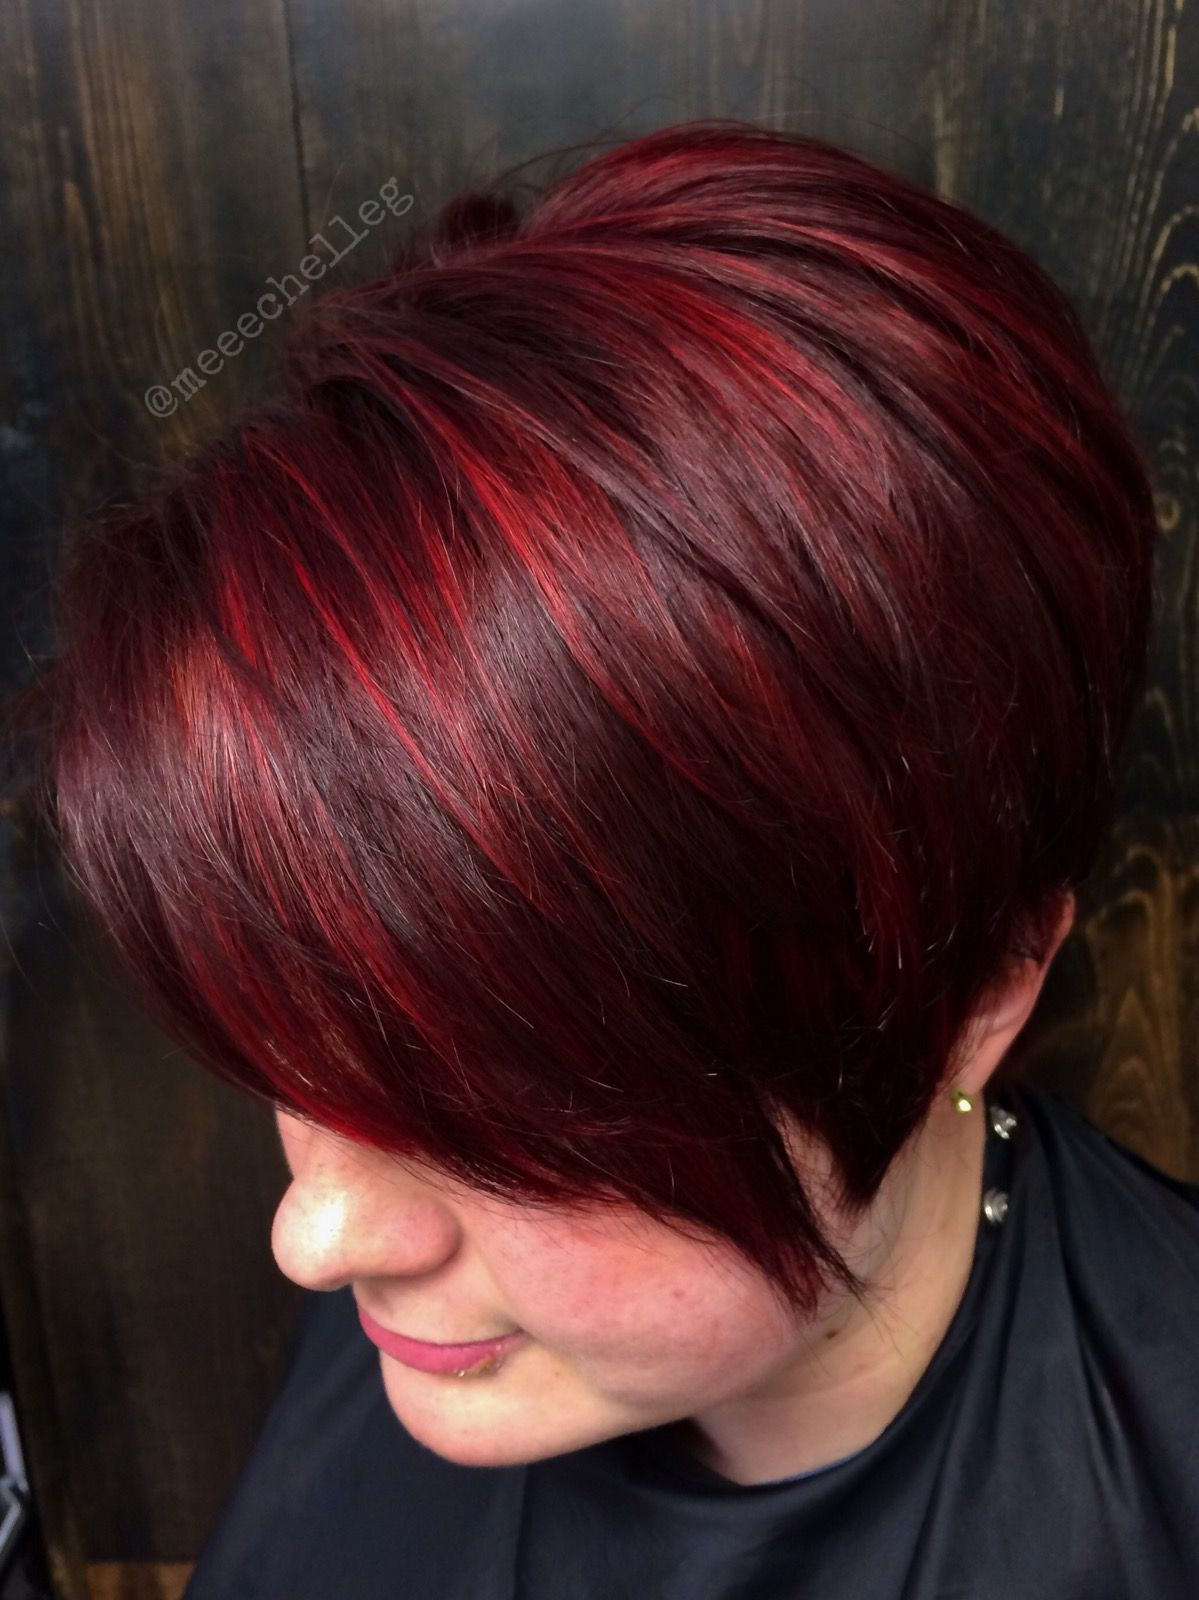 bright red, red highlights, stand out red, candy apple red ...